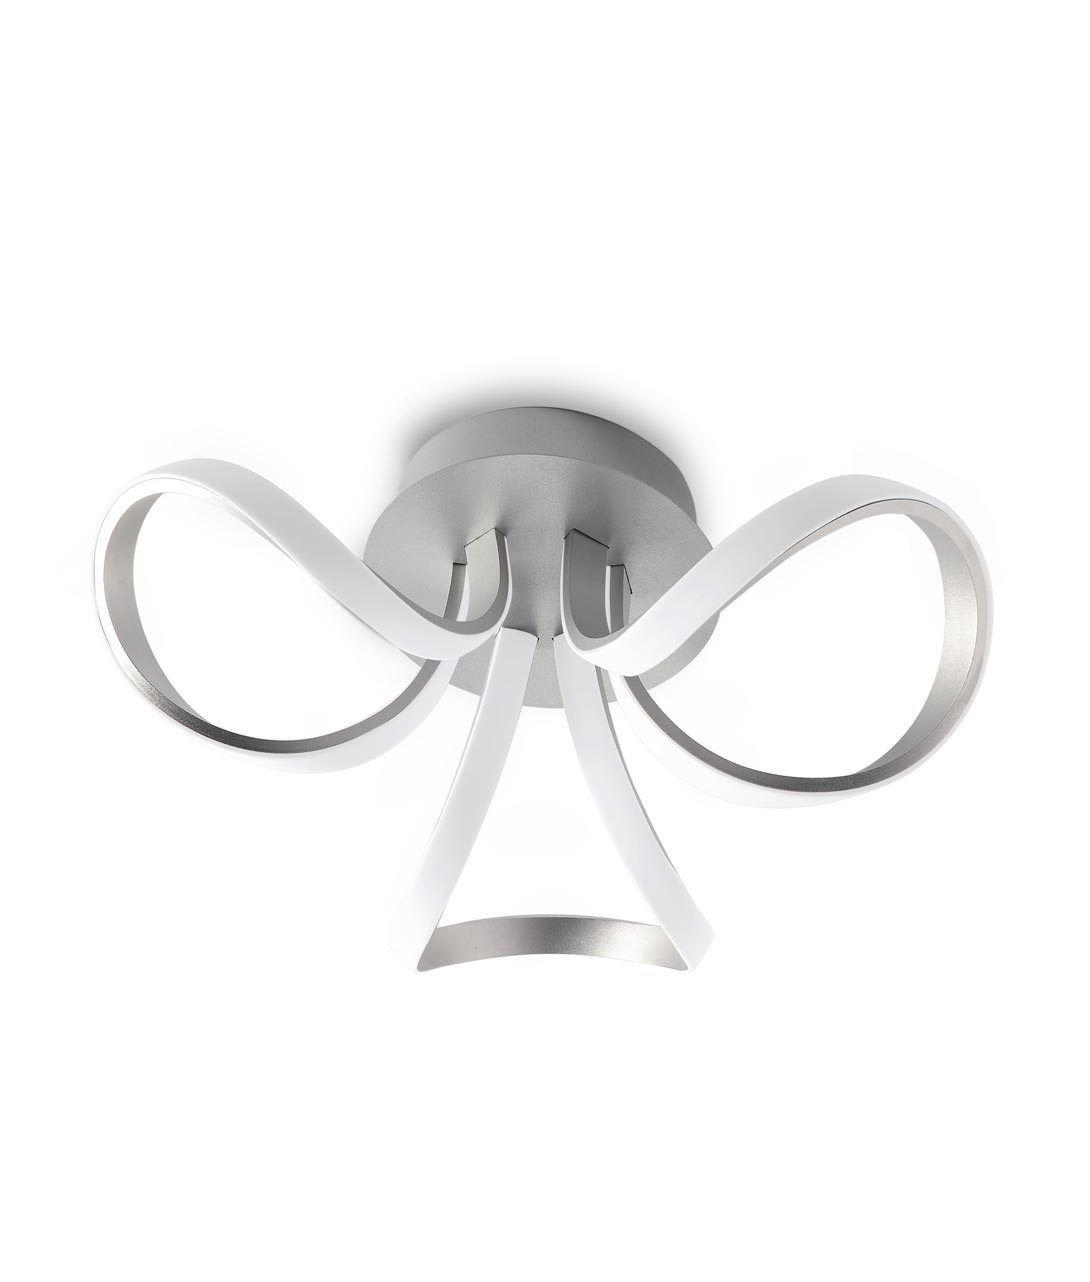 Plafón techo dimmable plata KNOT LED